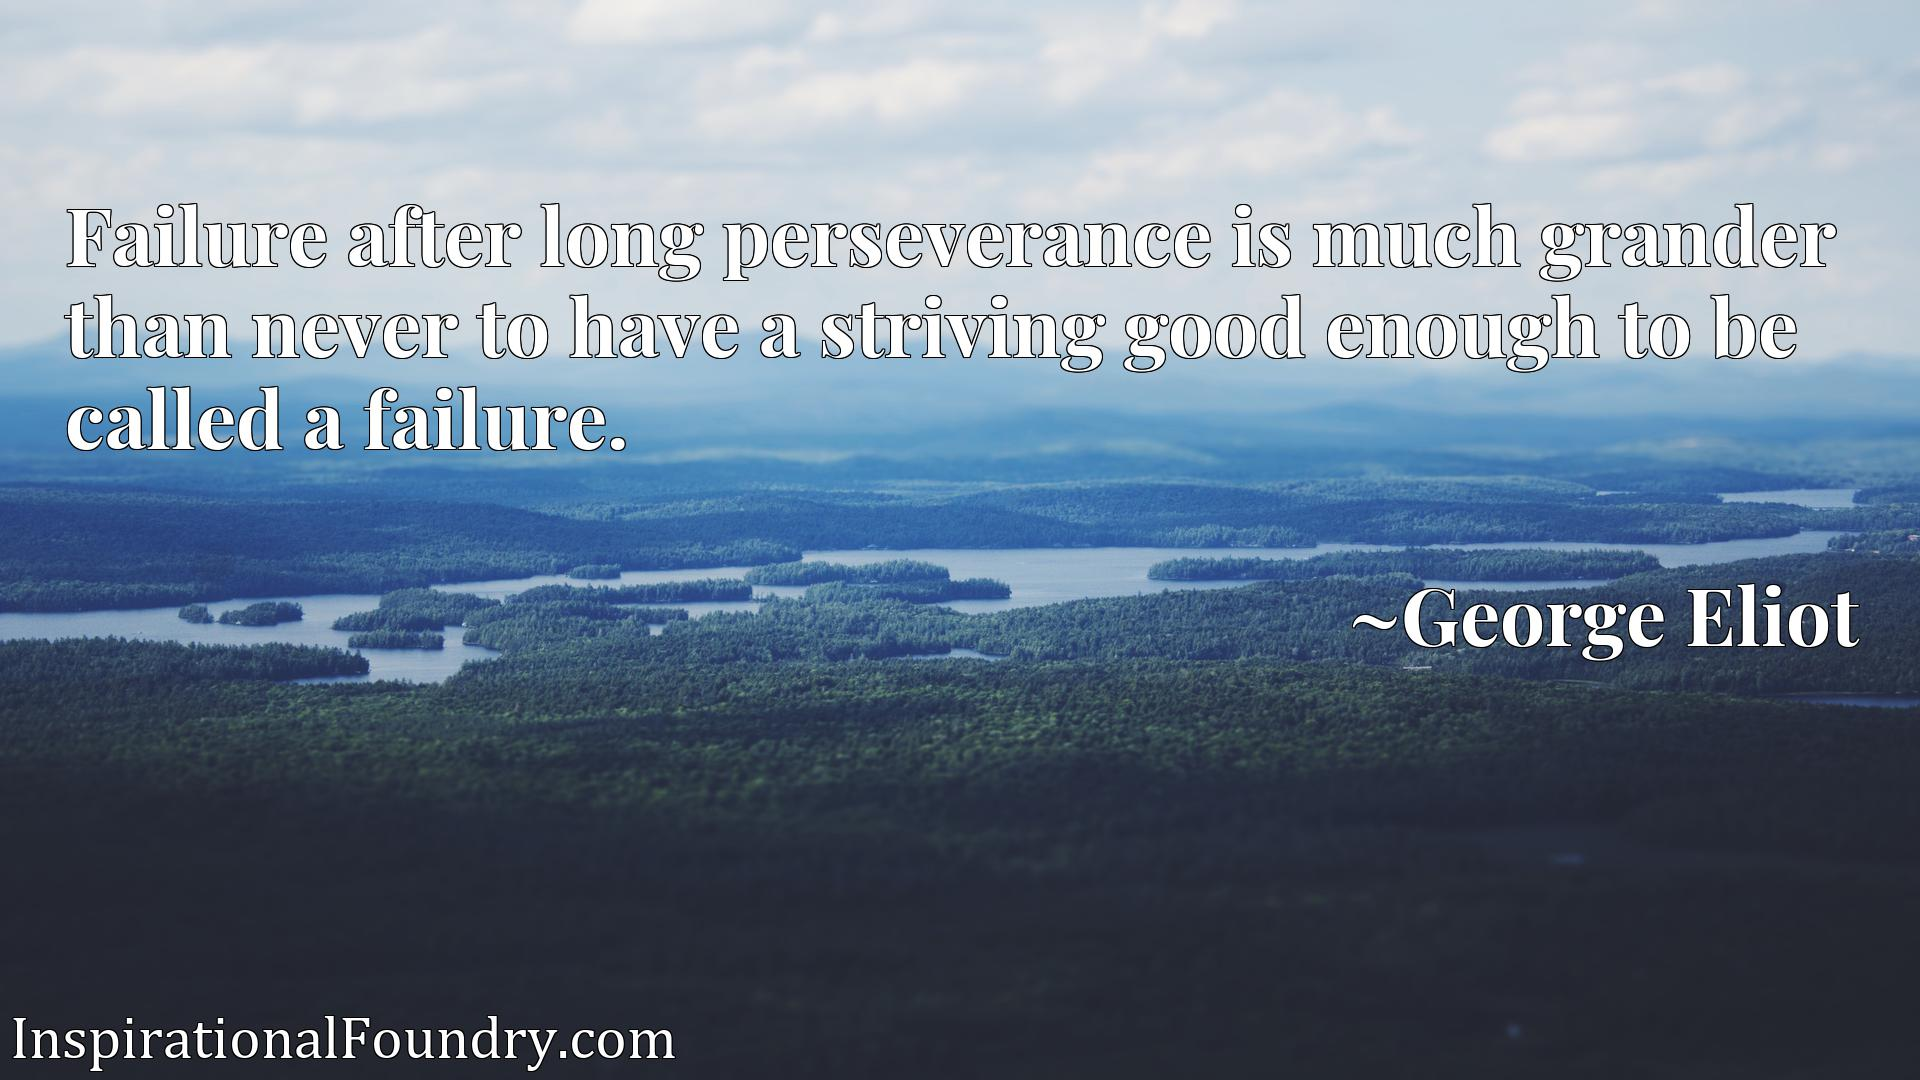 Failure after long perseverance is much grander than never to have a striving good enough to be called a failure.